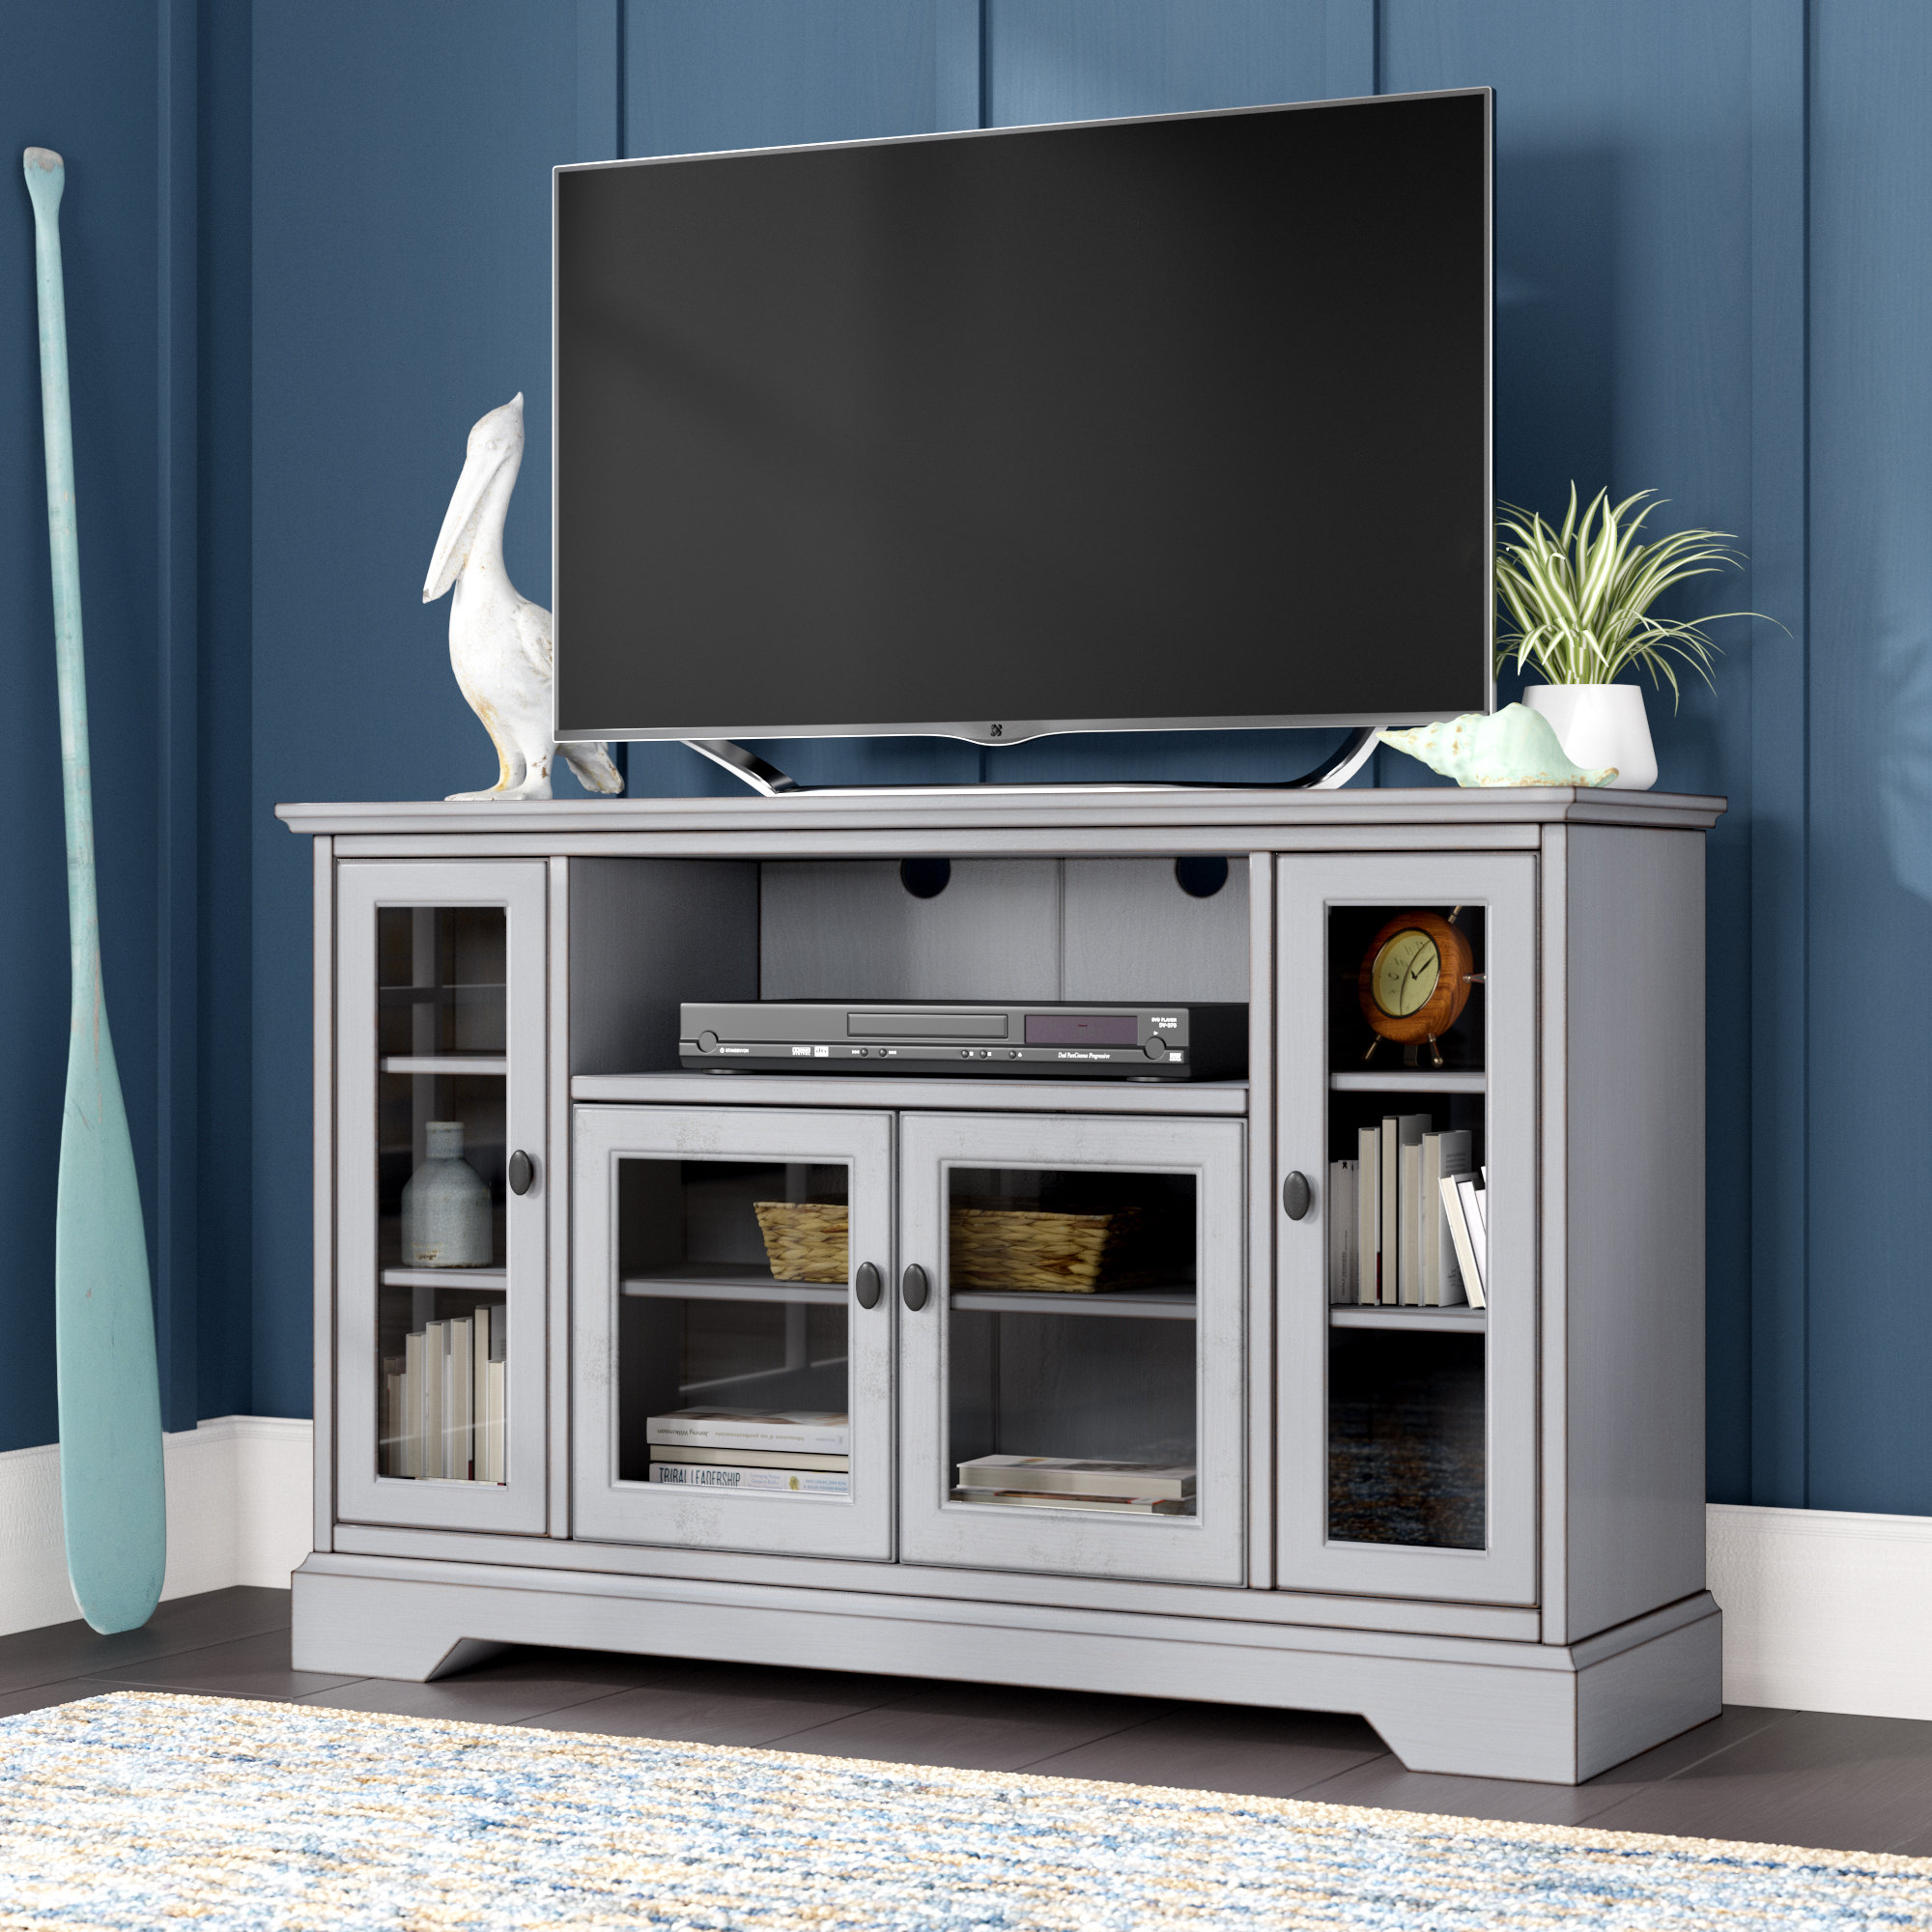 Tv Stands & Entertainment Centers You'll Love | Wayfair Within Kenzie 60 Inch Open Display Tv Stands (View 6 of 30)